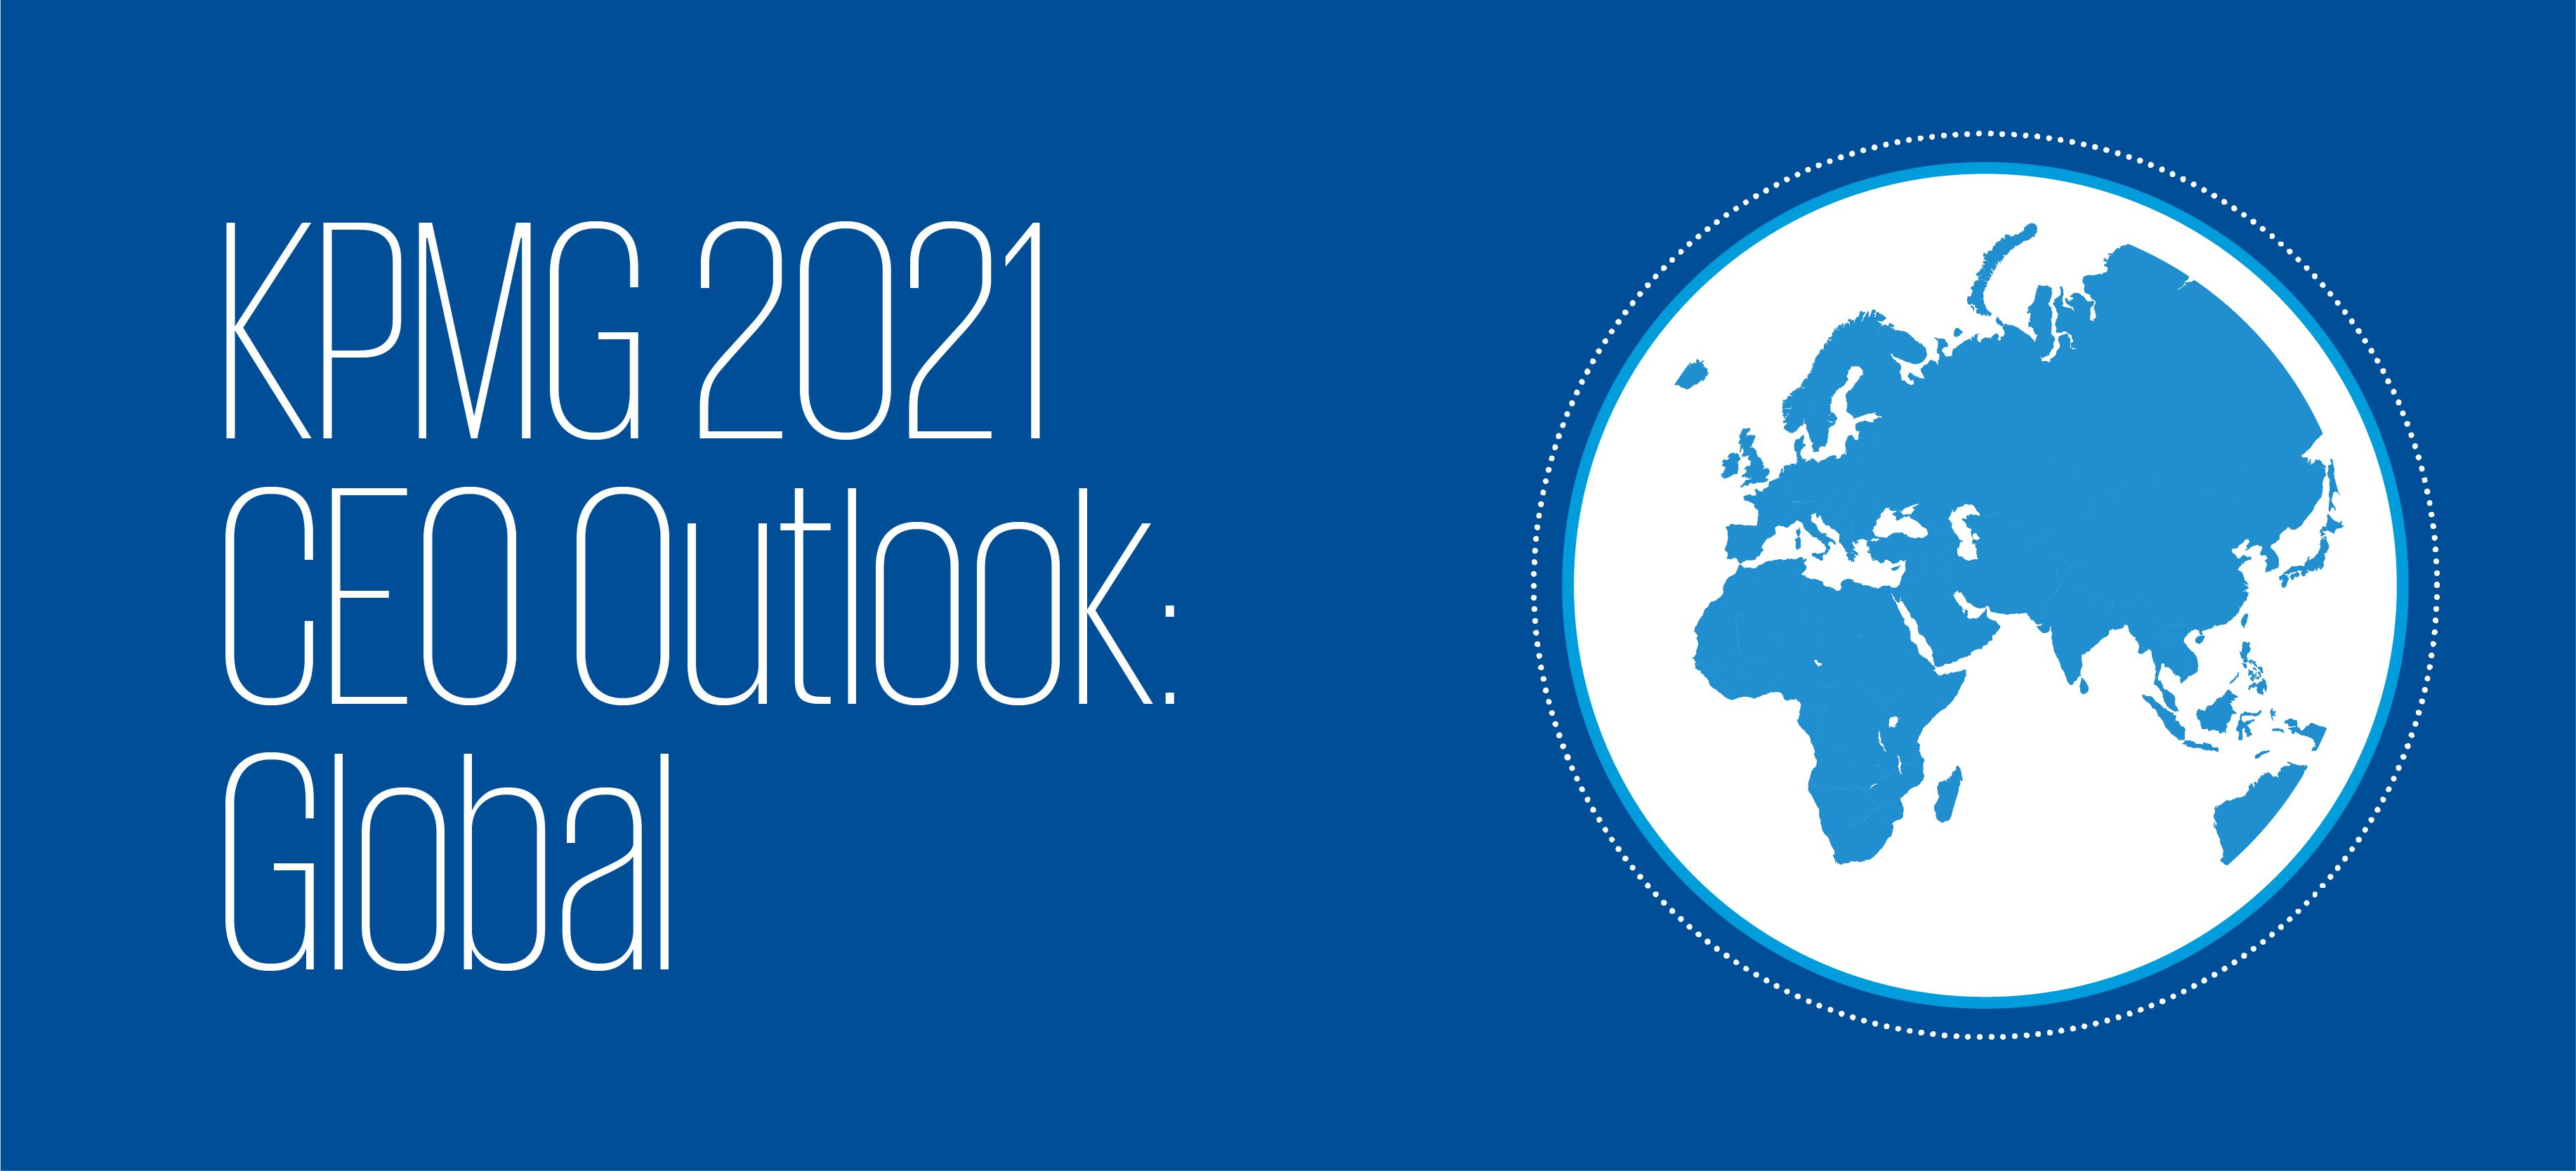 KPMG 2021 CEO Outlook